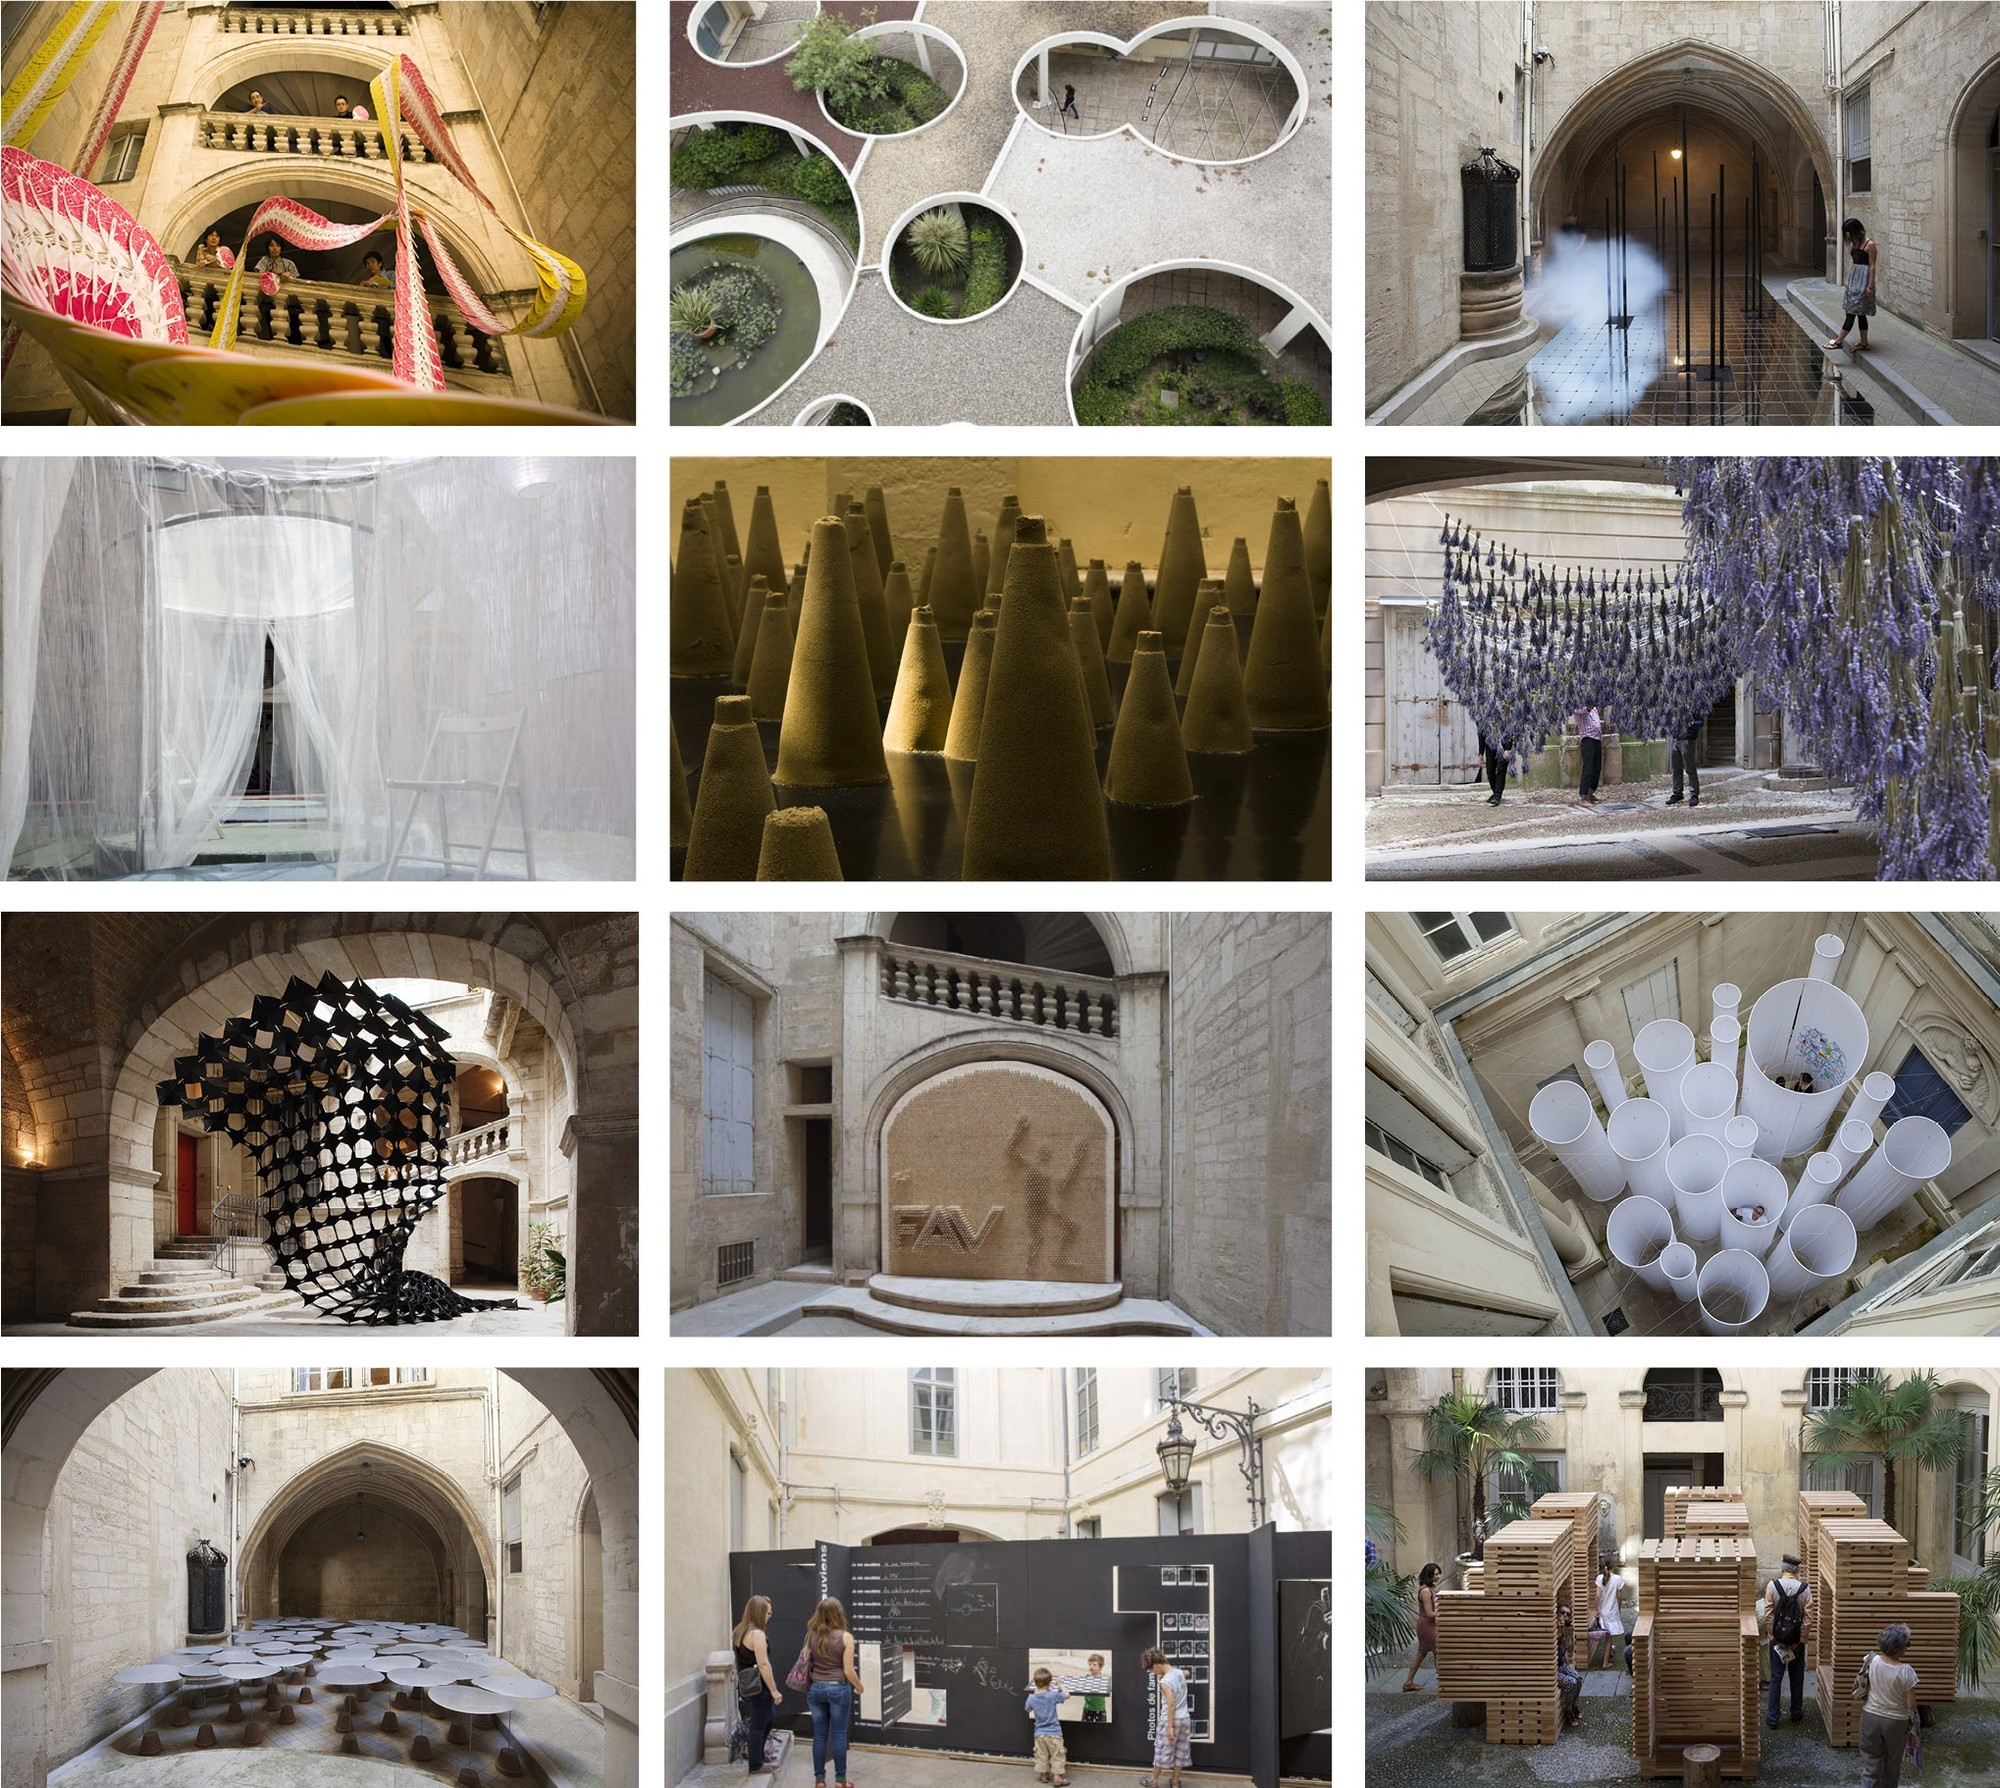 Festival Des Architectures Vives 2014 Call for Submissions